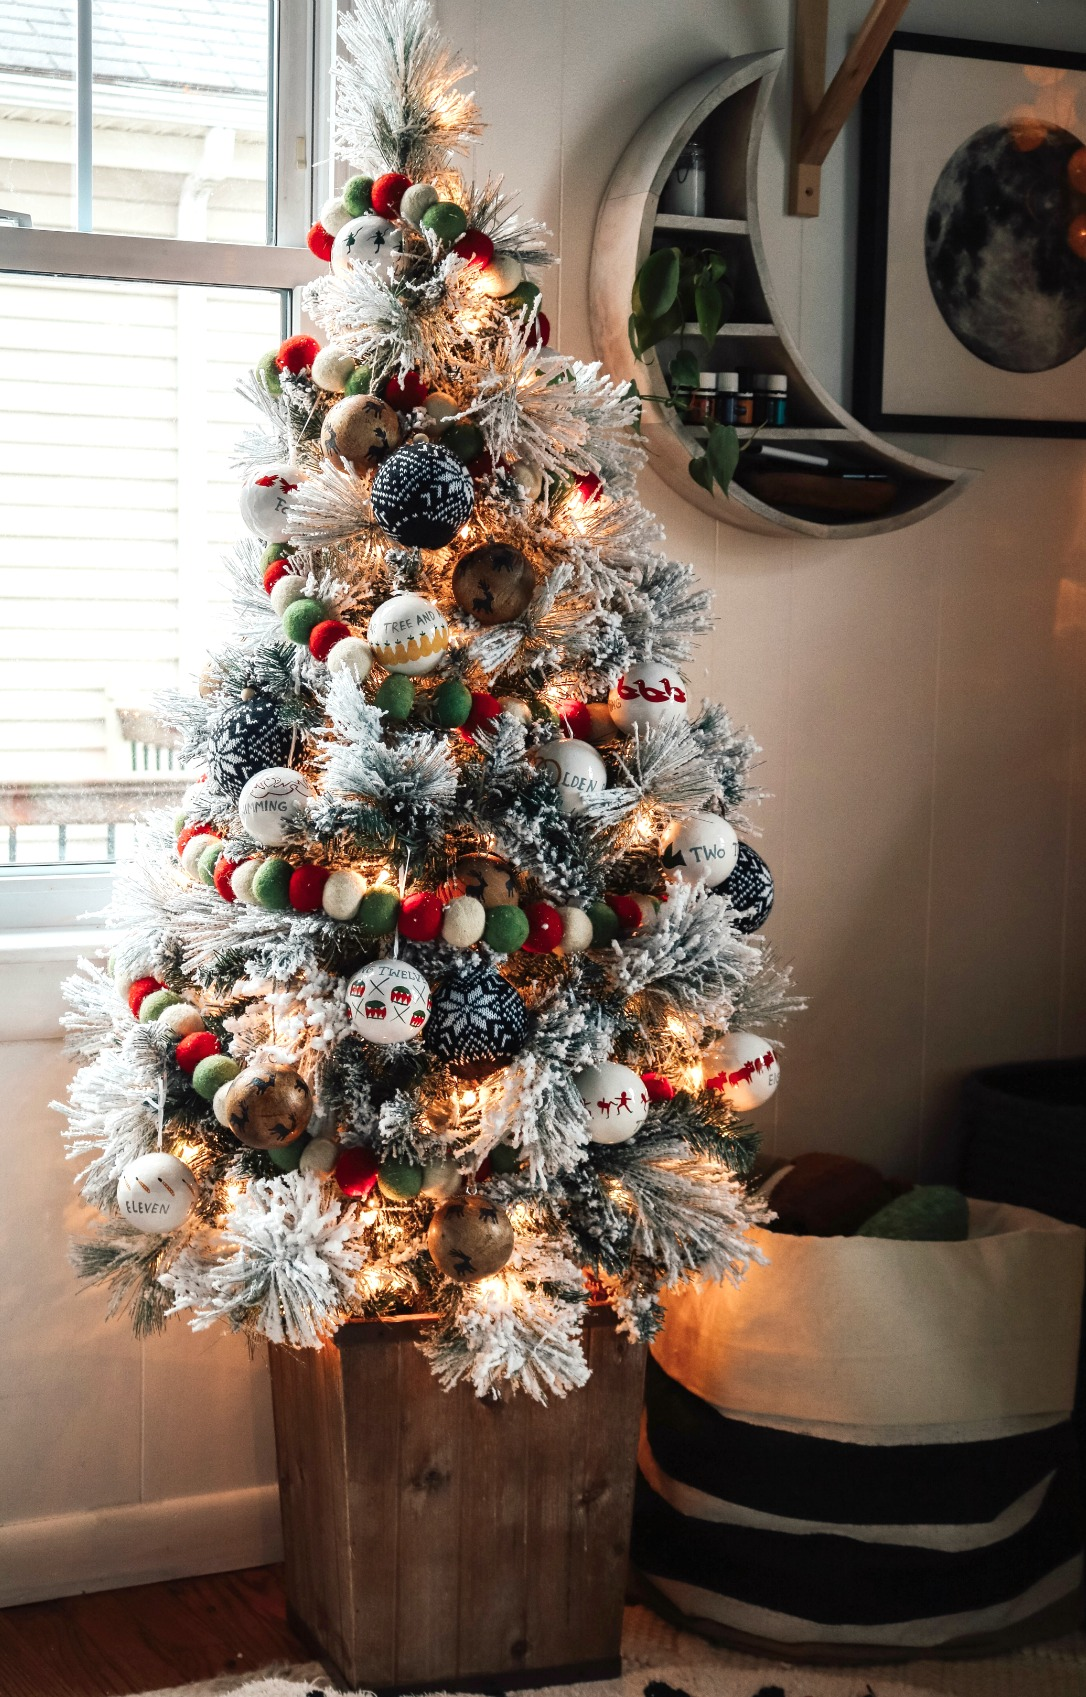 Christmas Home Decor in a Small Space